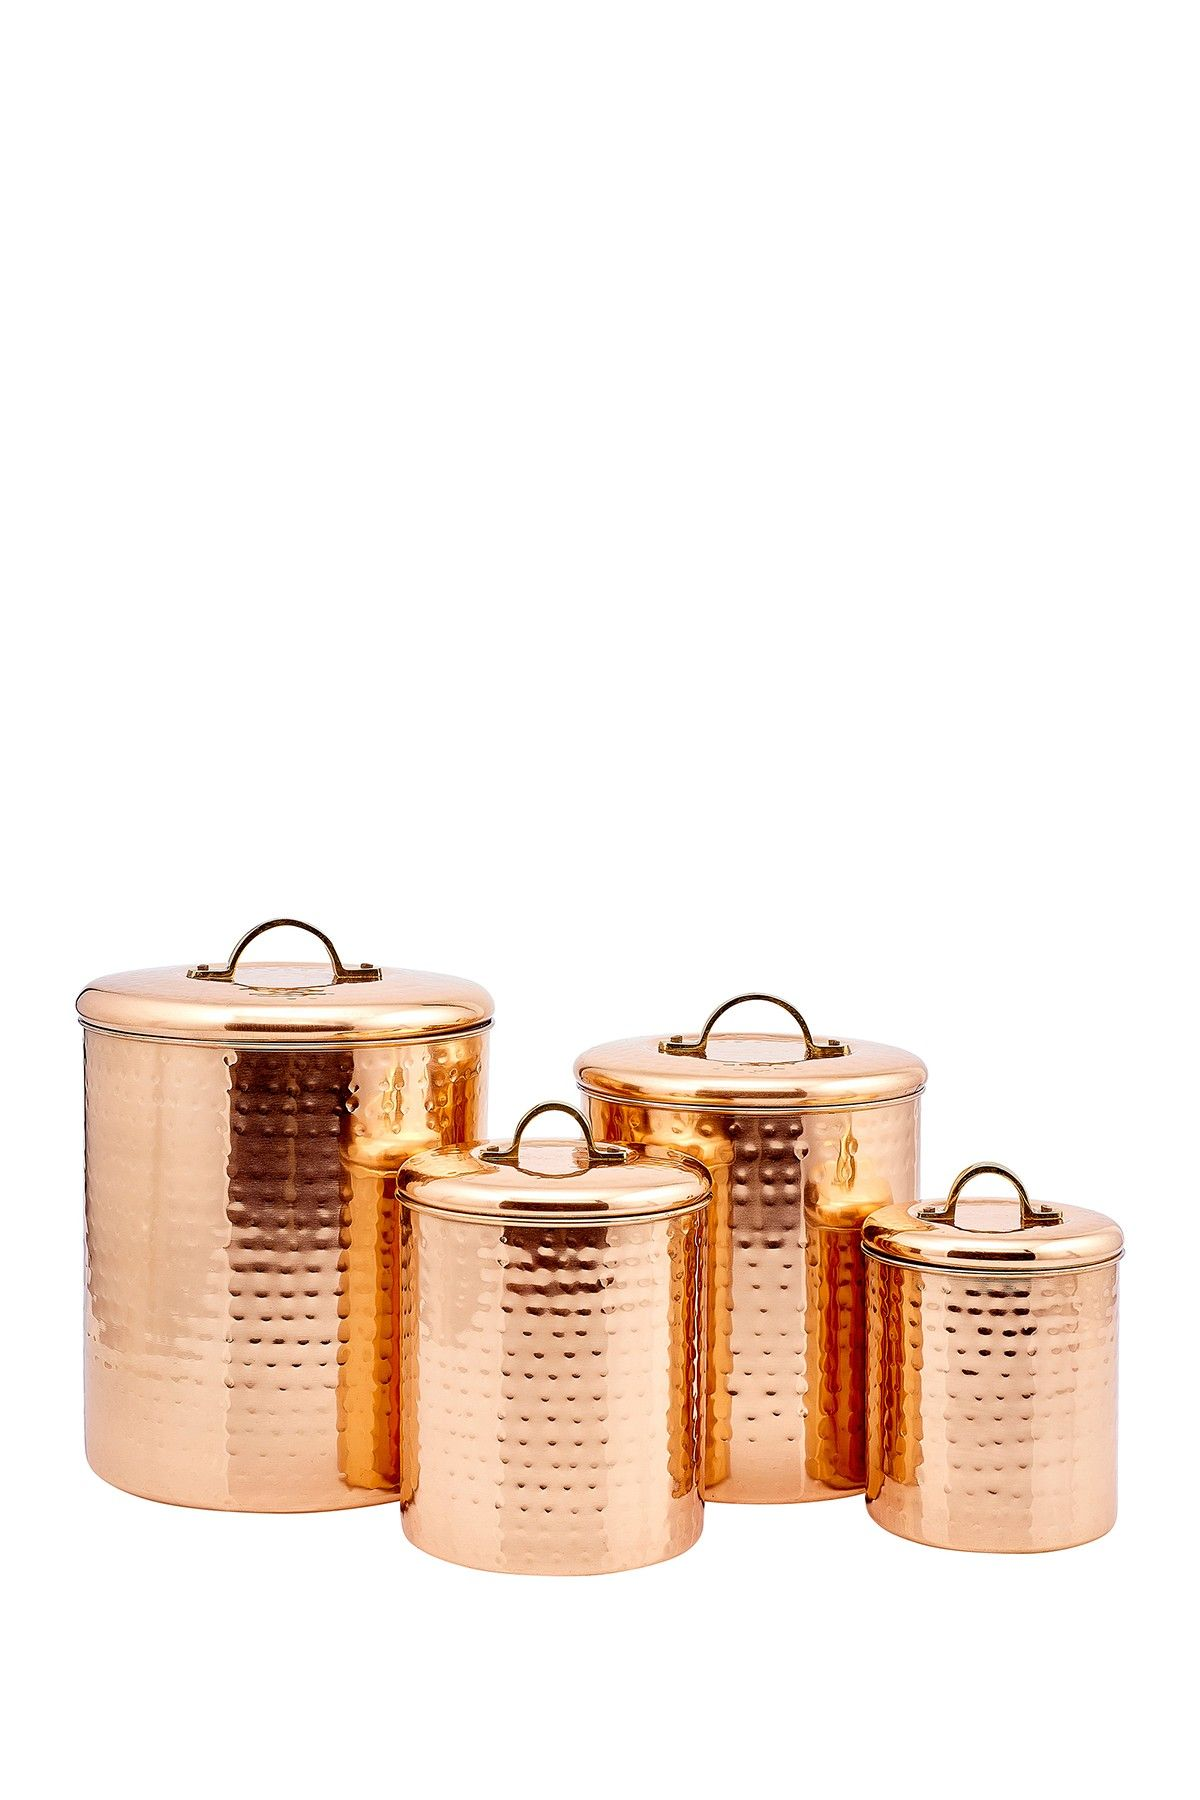 Odi Housewares Copper Hammered Canister 4 Piece Set Copper Kitchen Decor Copper Canisters Copper Kitchen Accessories